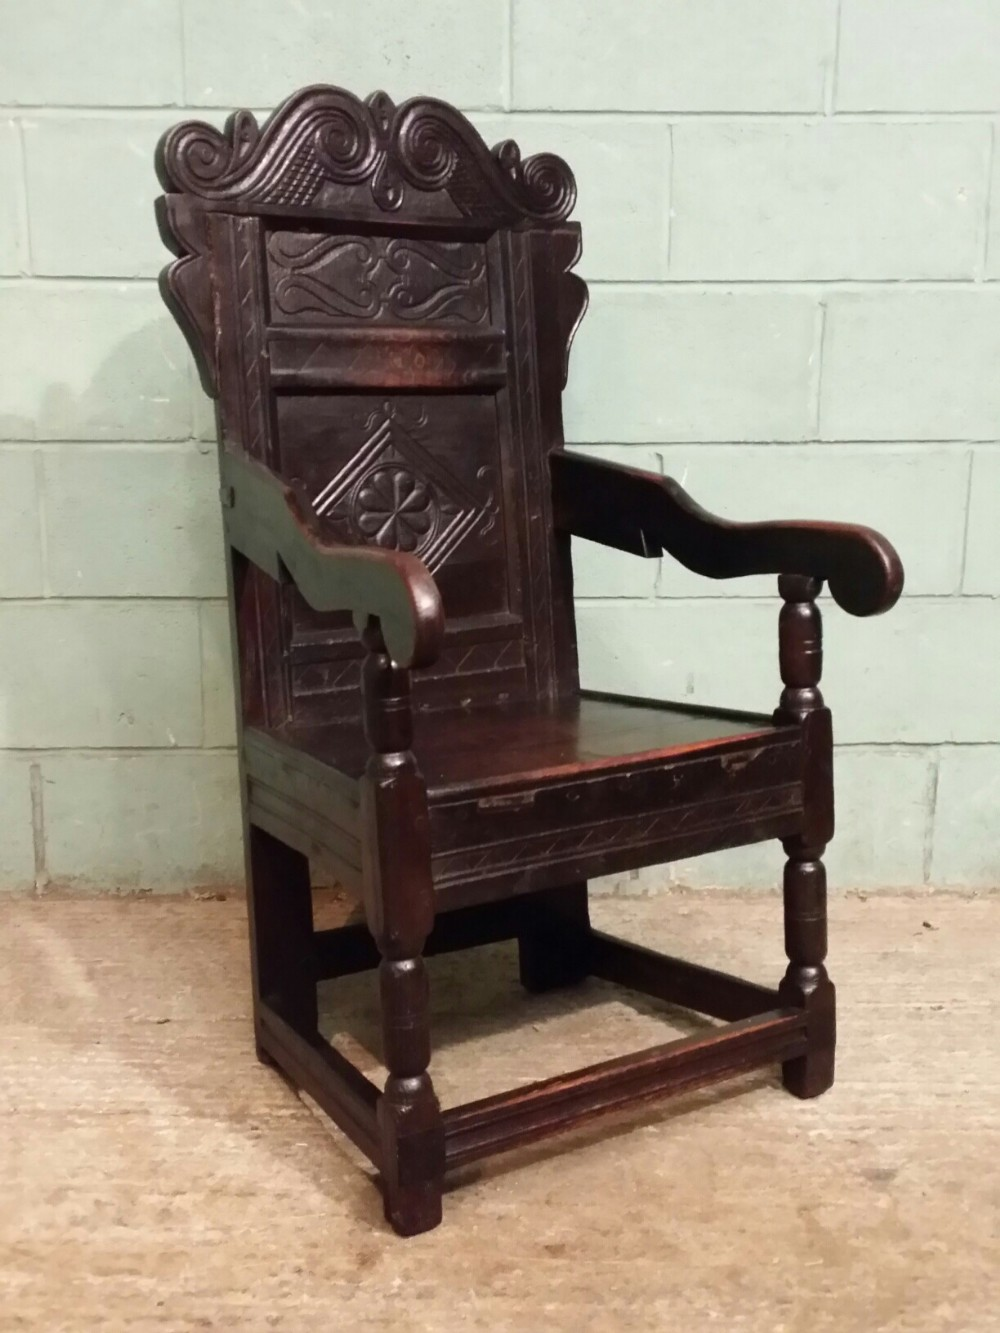 antique early 18th century yorkshire oak wainscot chair c1720